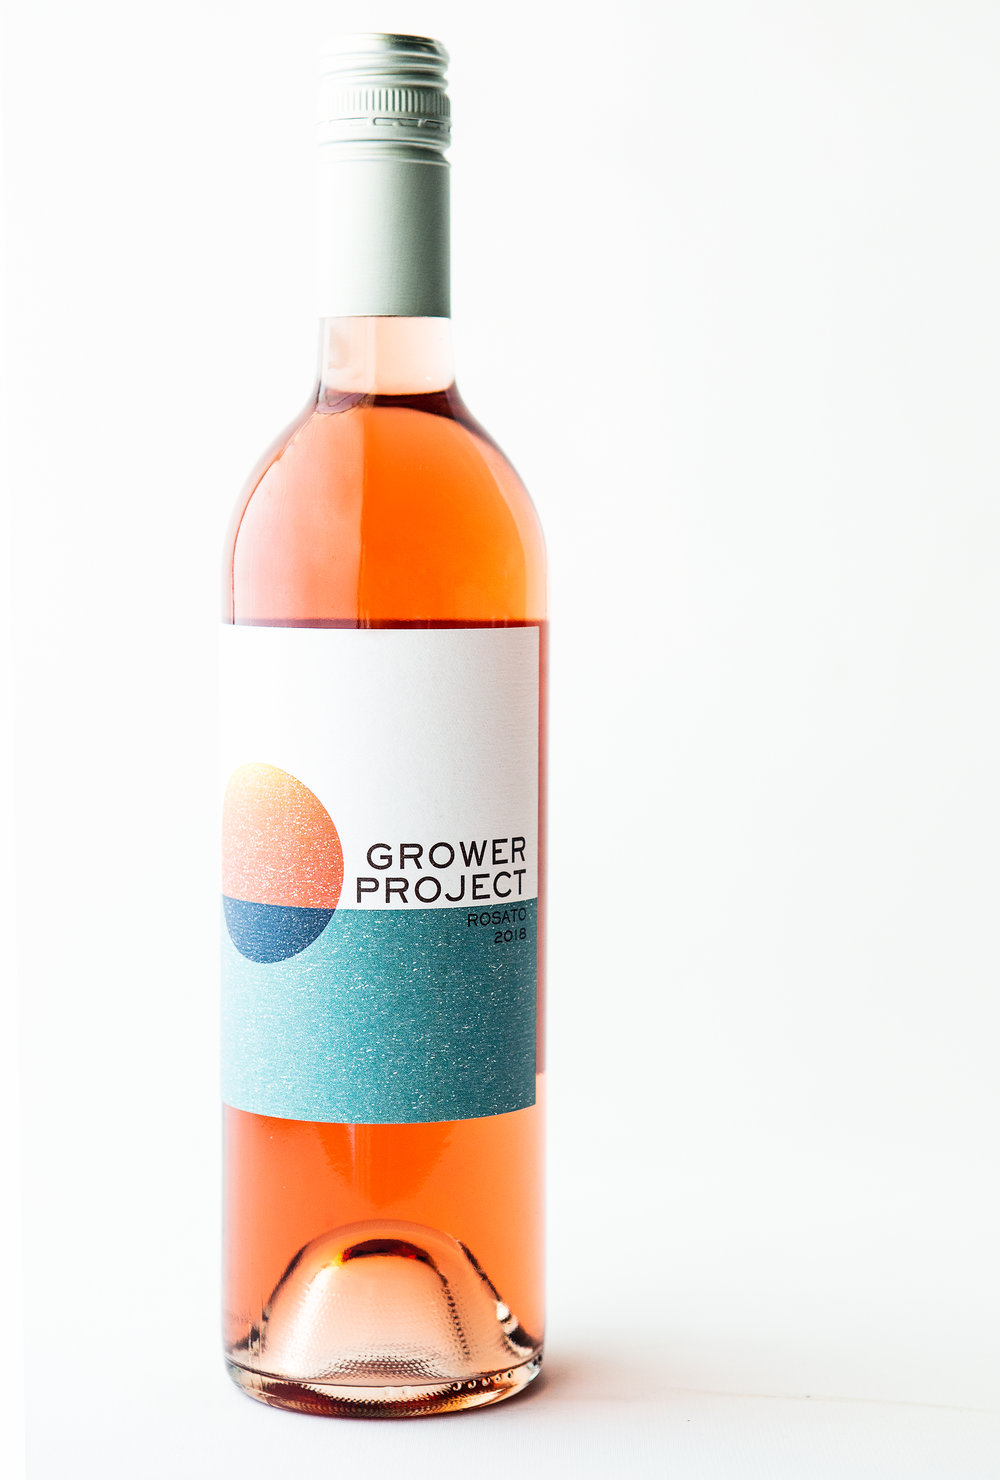 Grower Project Rosato Wine For the People Texas.jpg